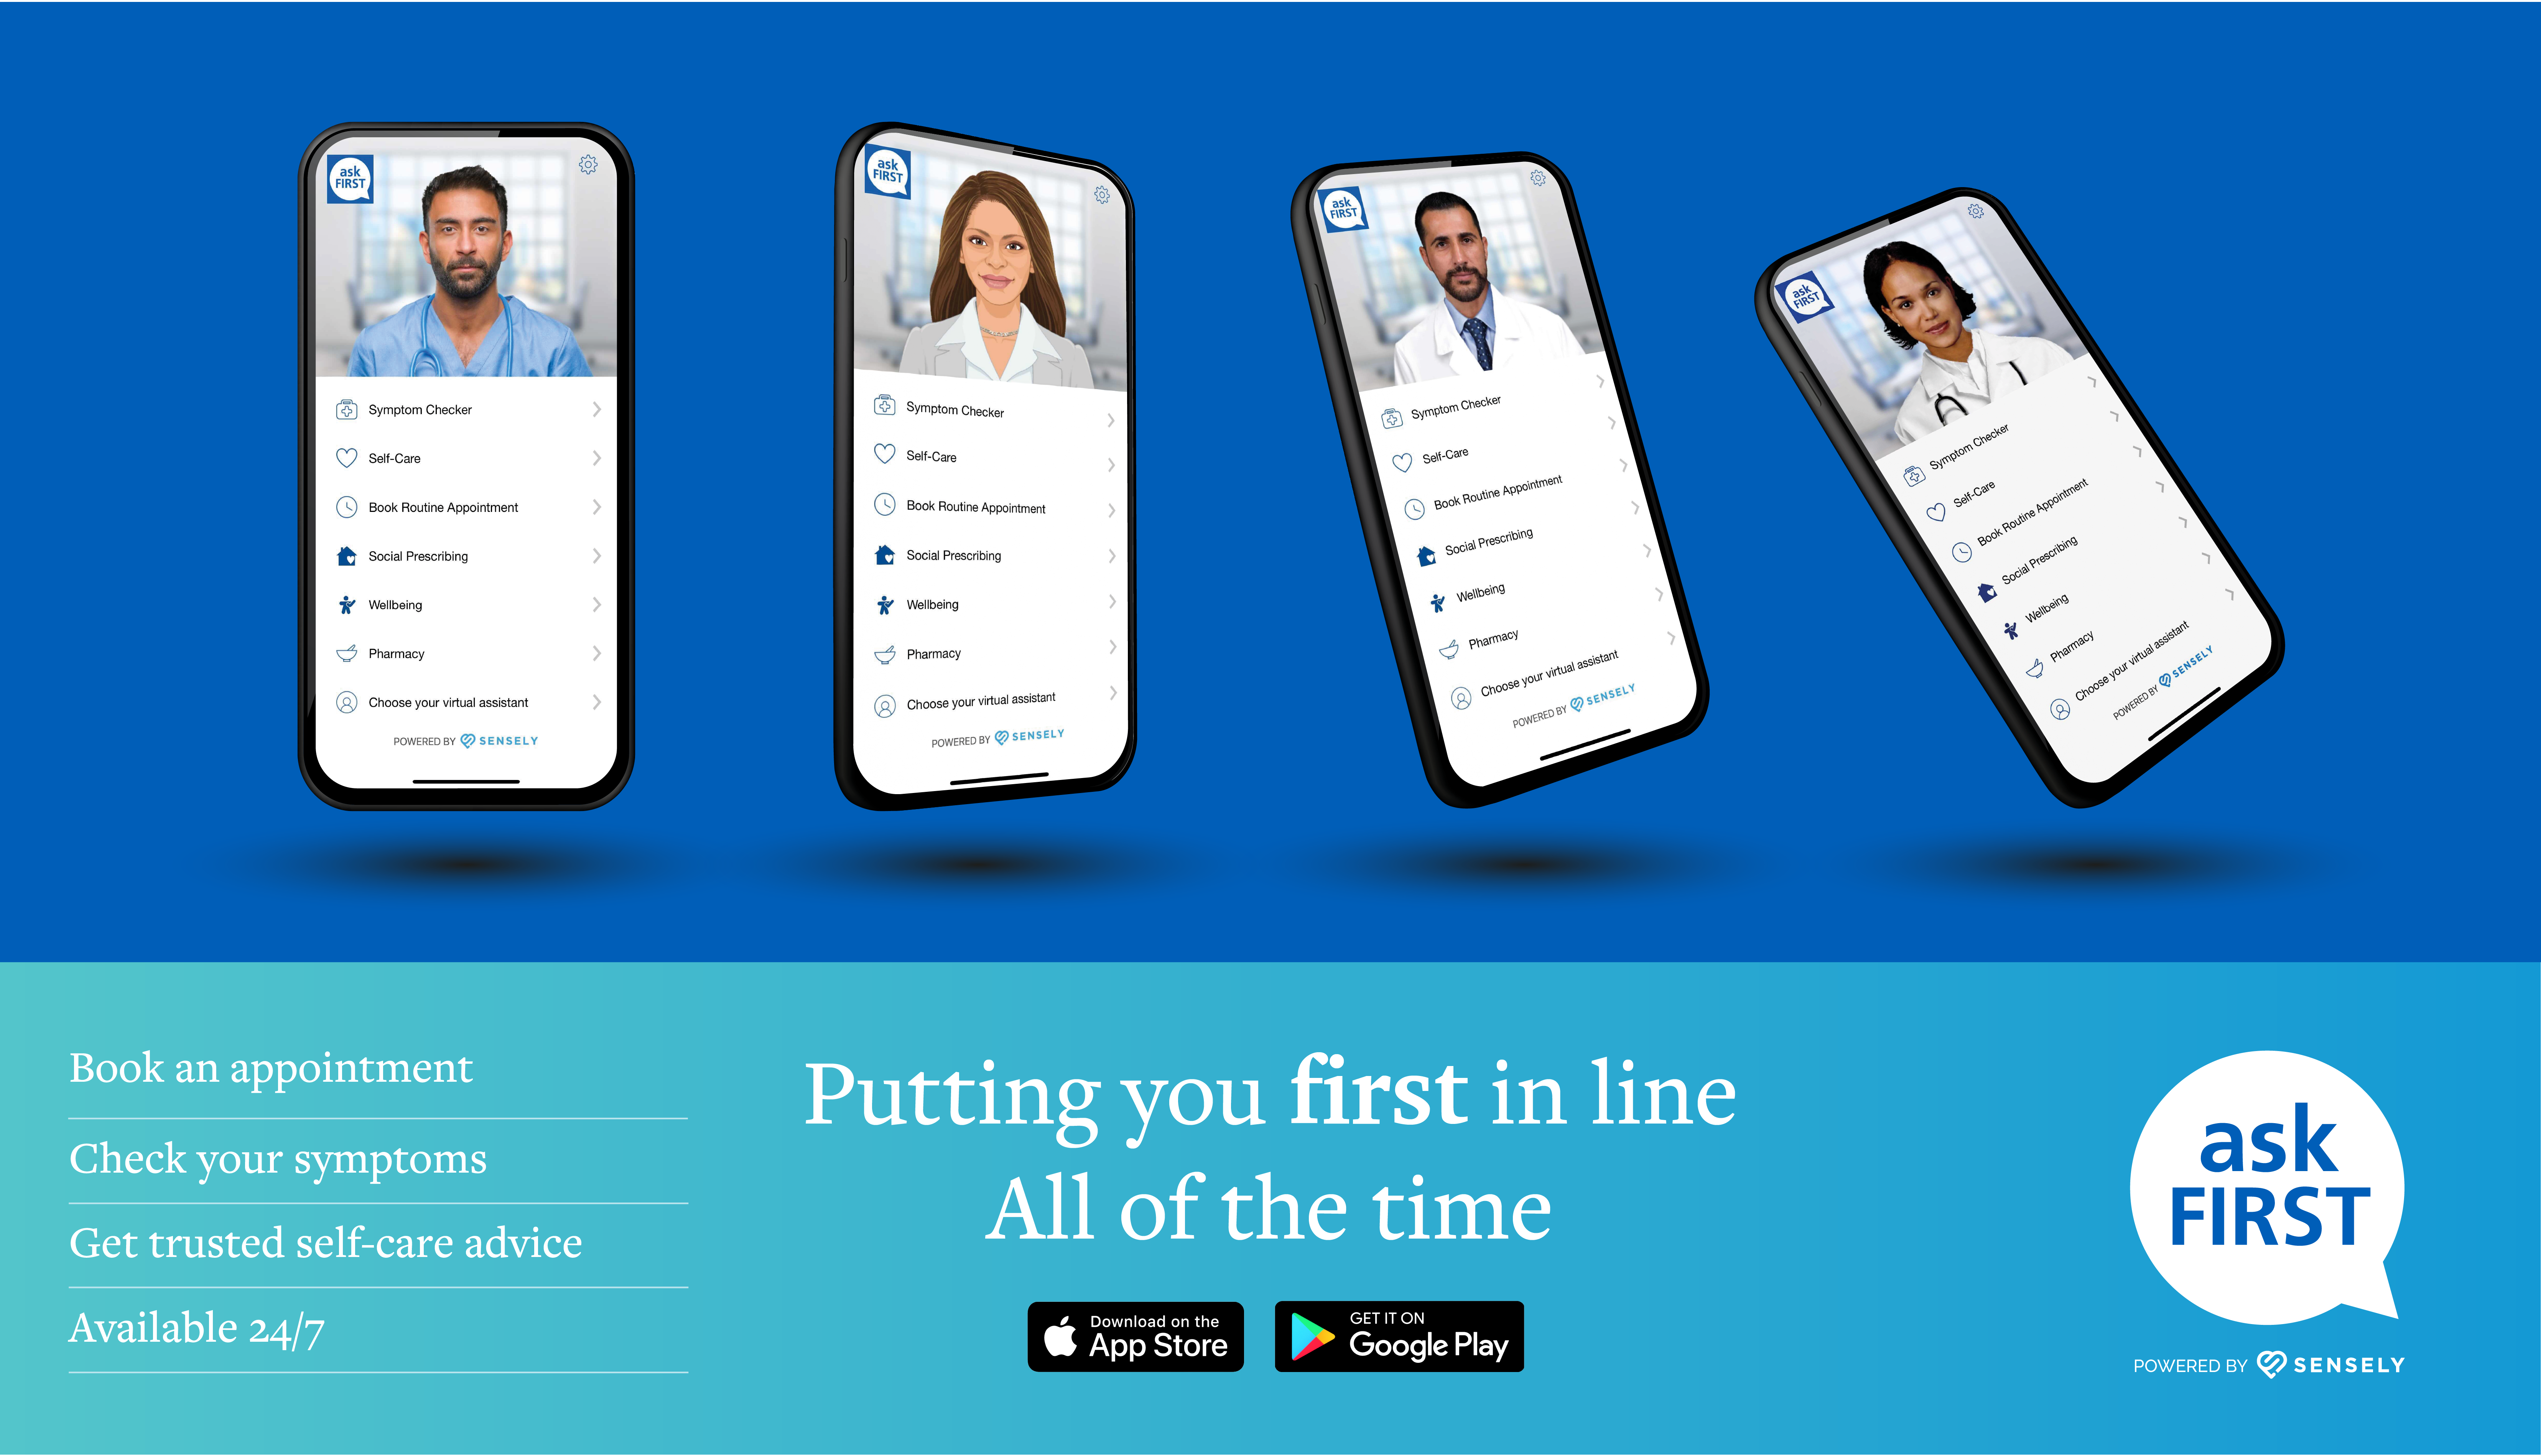 Ask First Putting you first in line all of the time book an appointment check your symptoms get trusted self care advice available 24 7 download on the app store or get it on google